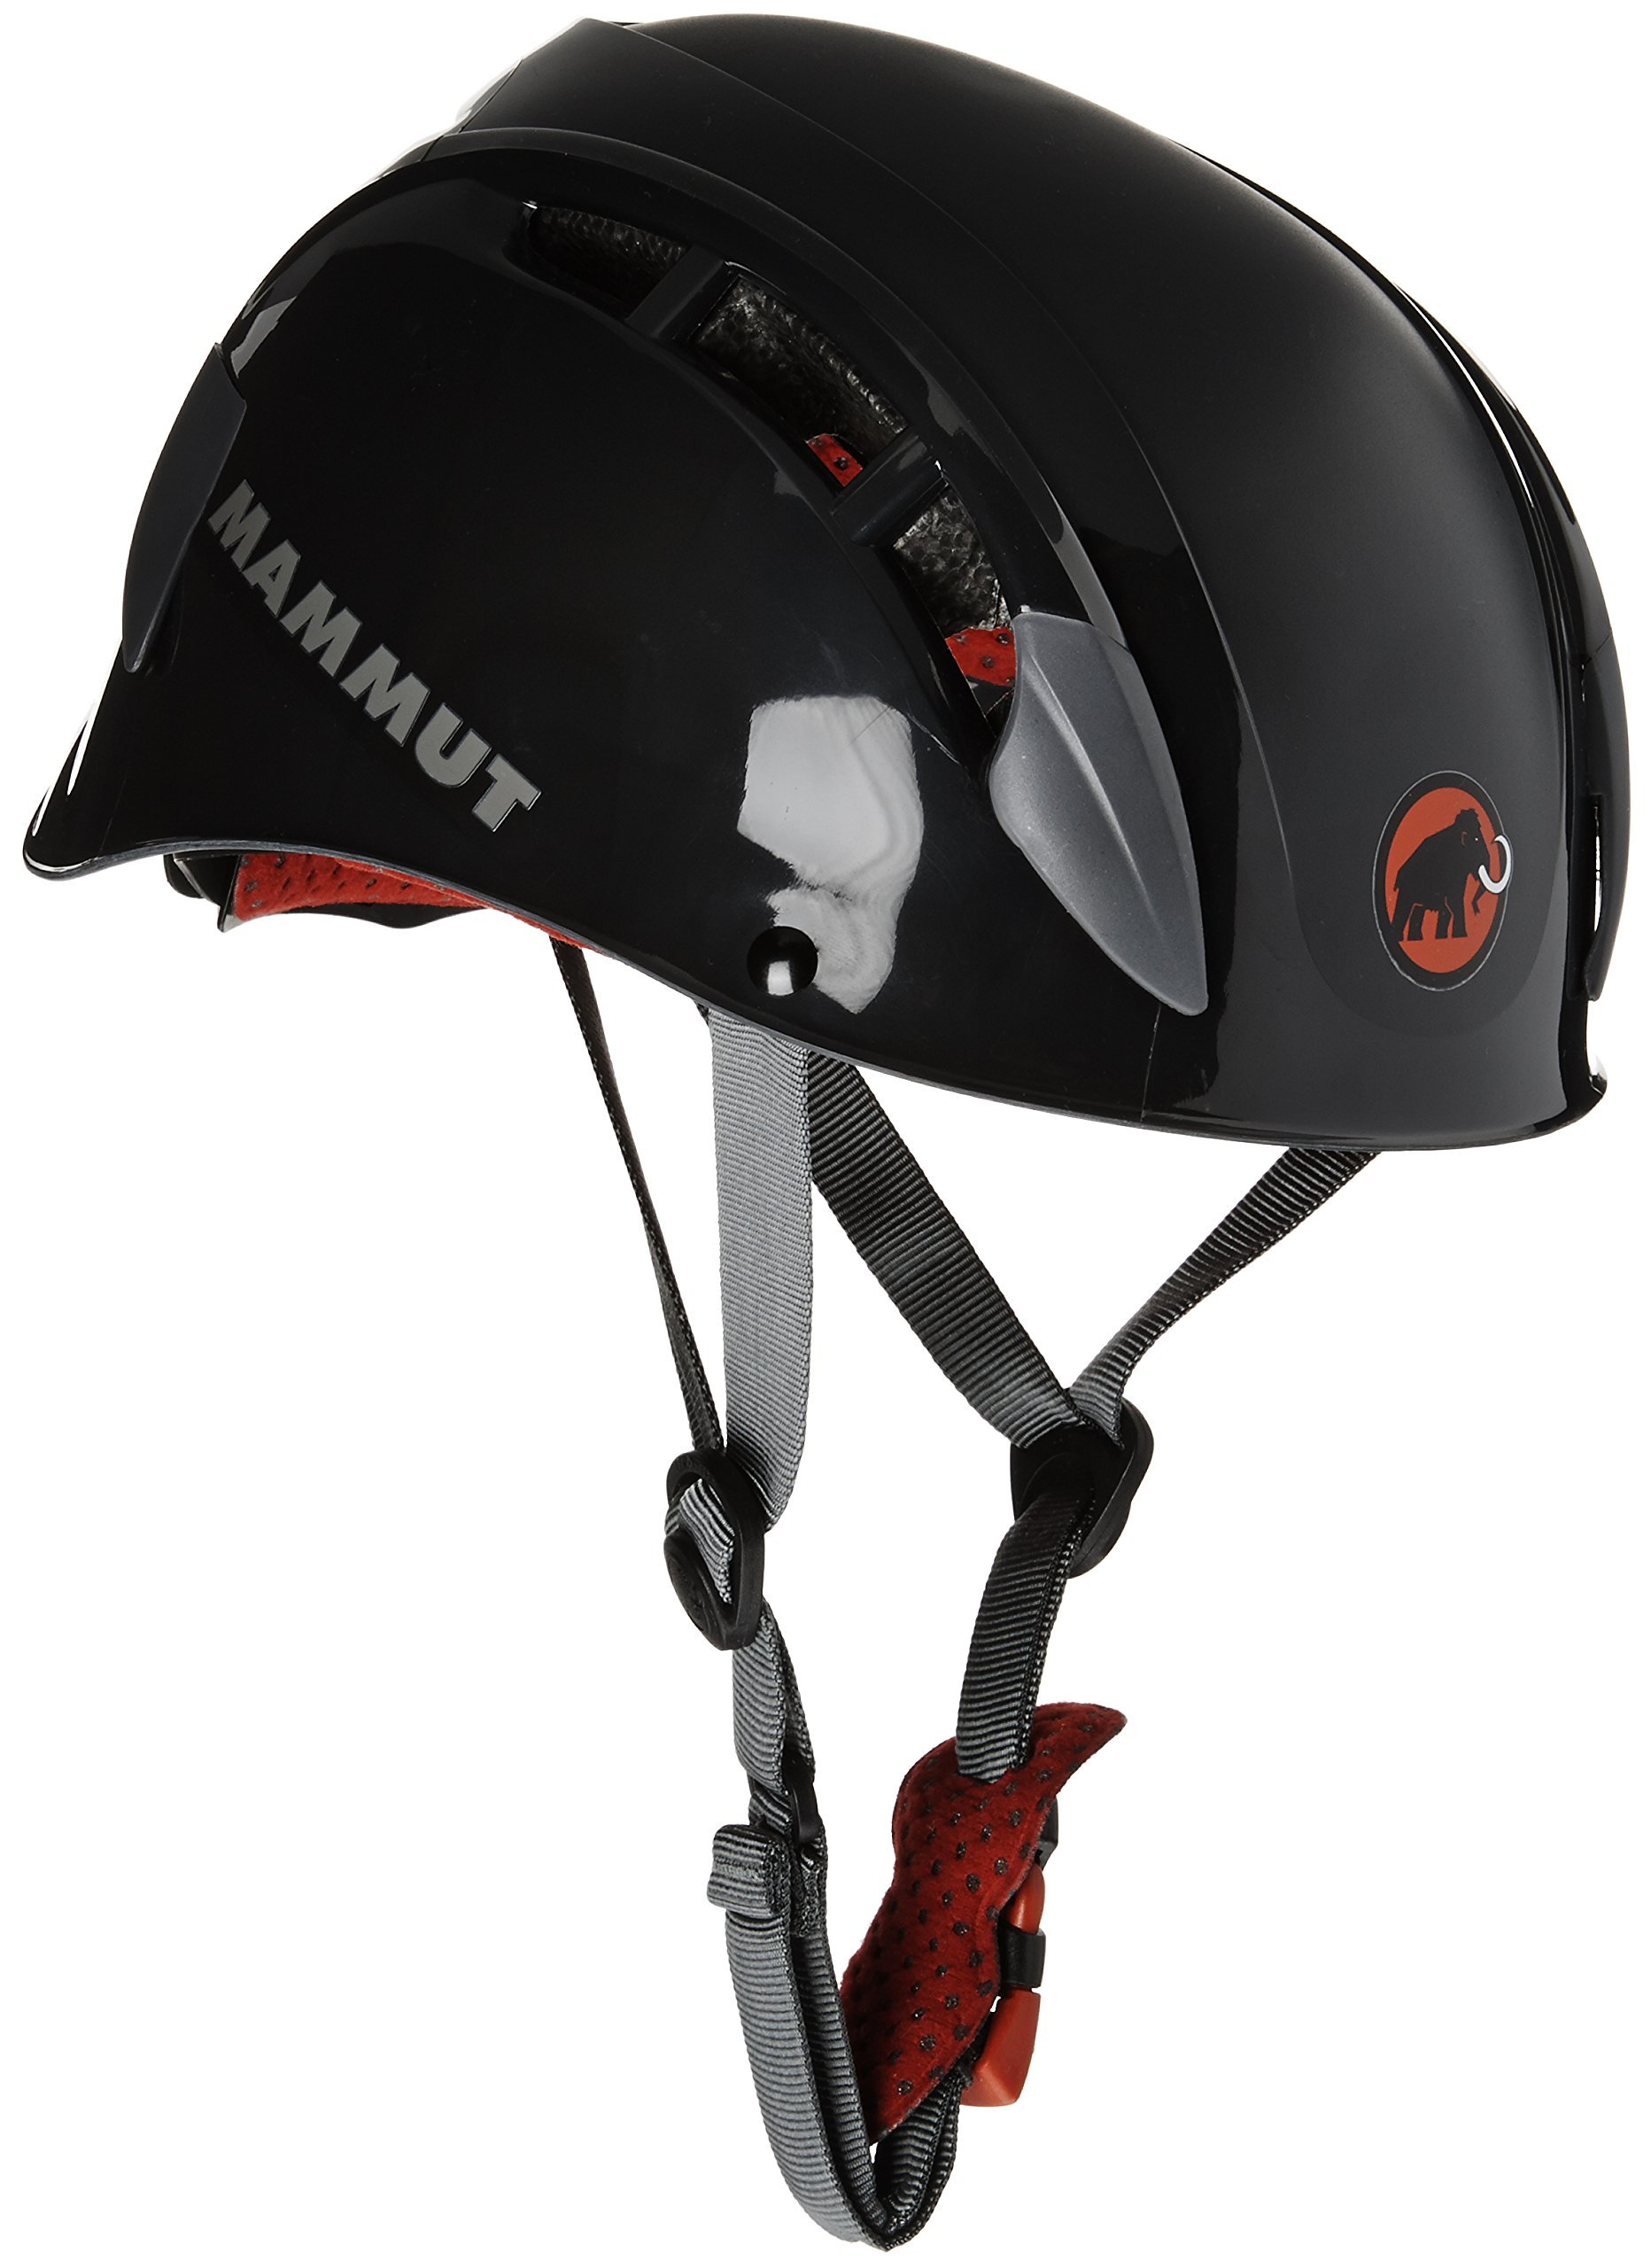 Mammut-Skywalker-2-Casco-para-escalada